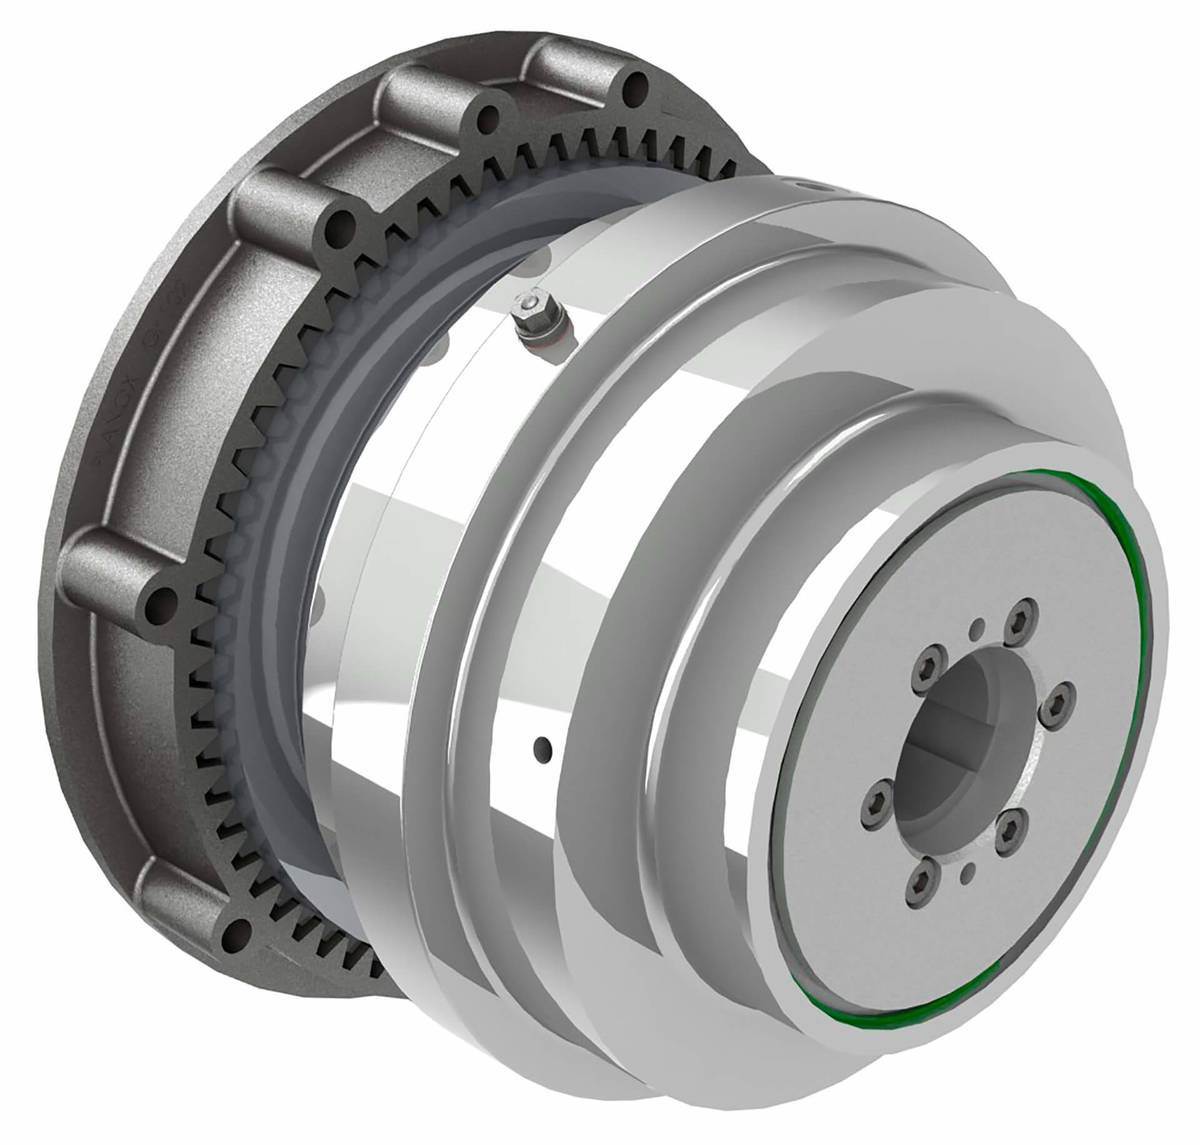 Desch Planox® PHRT switched off hydraulically  Multi Plate Friction Clutch Image